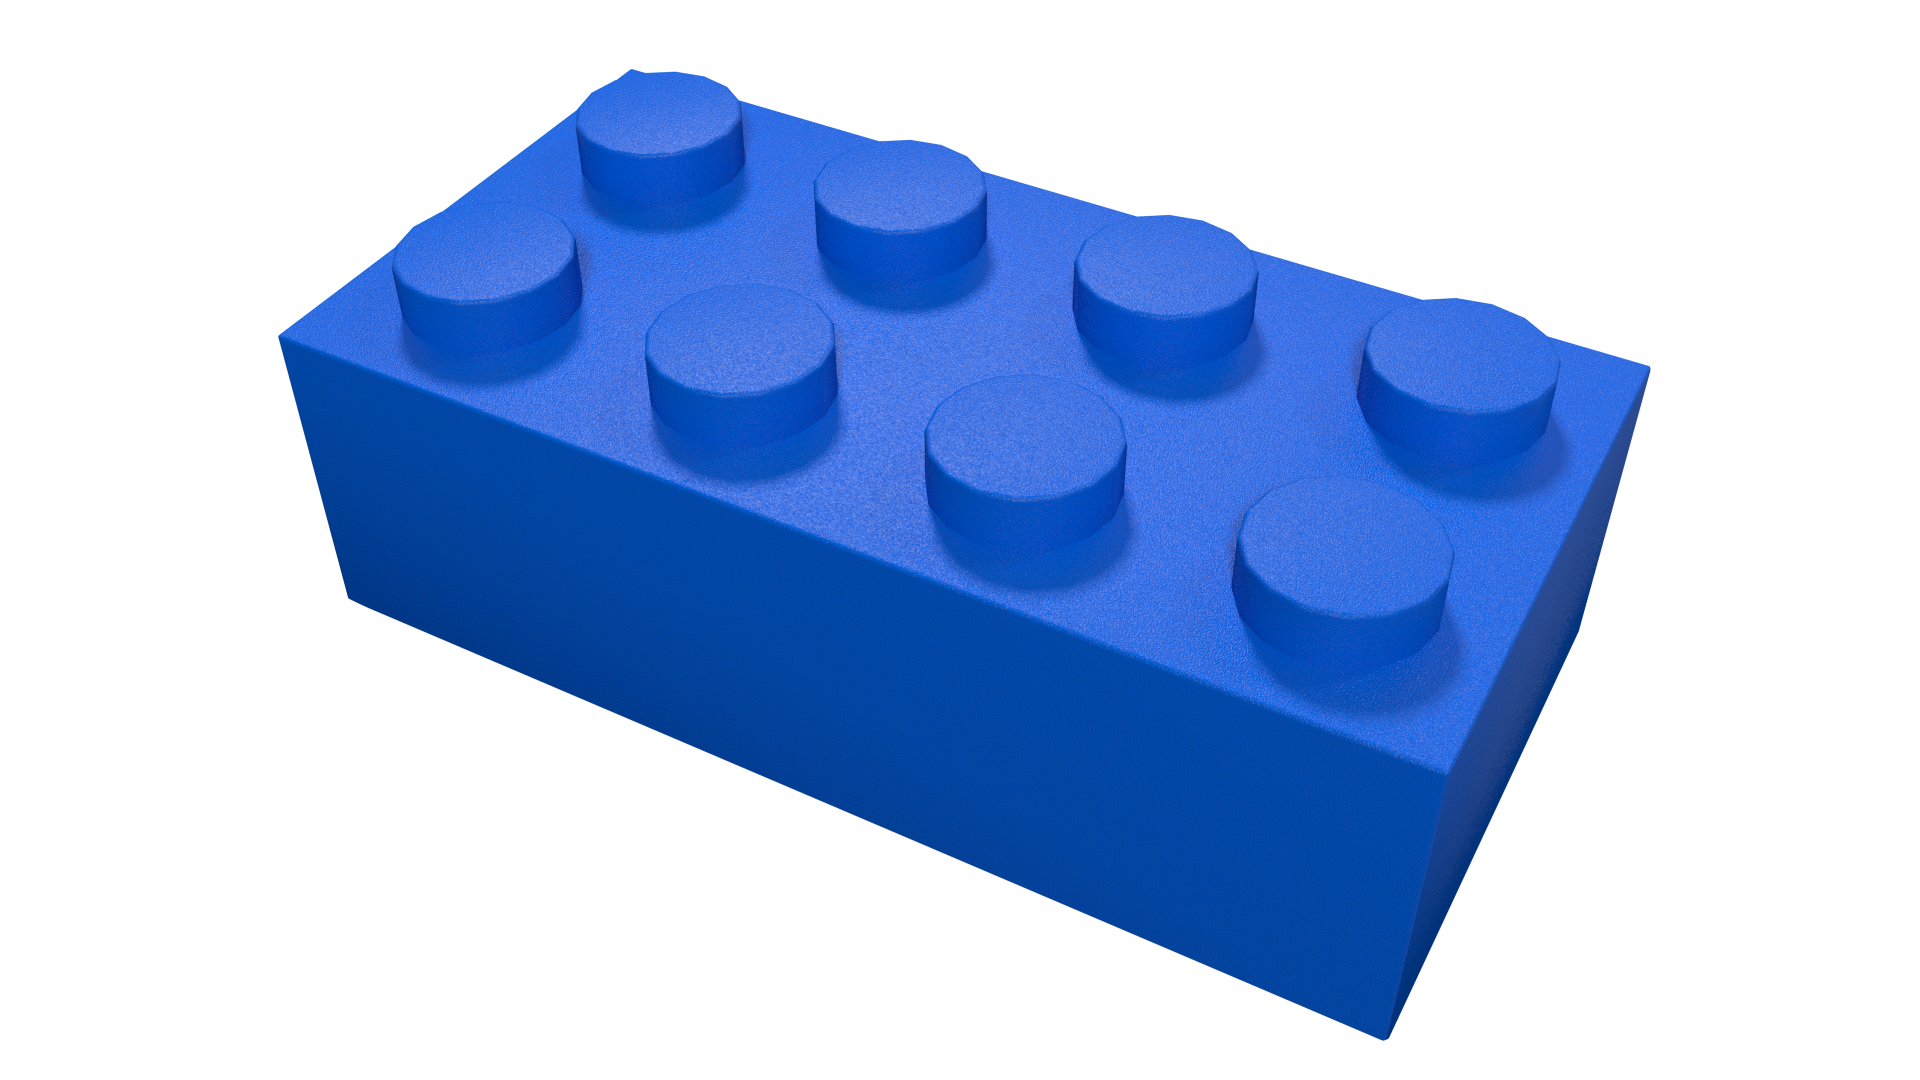 Transparent lego. Materials in blender cycles